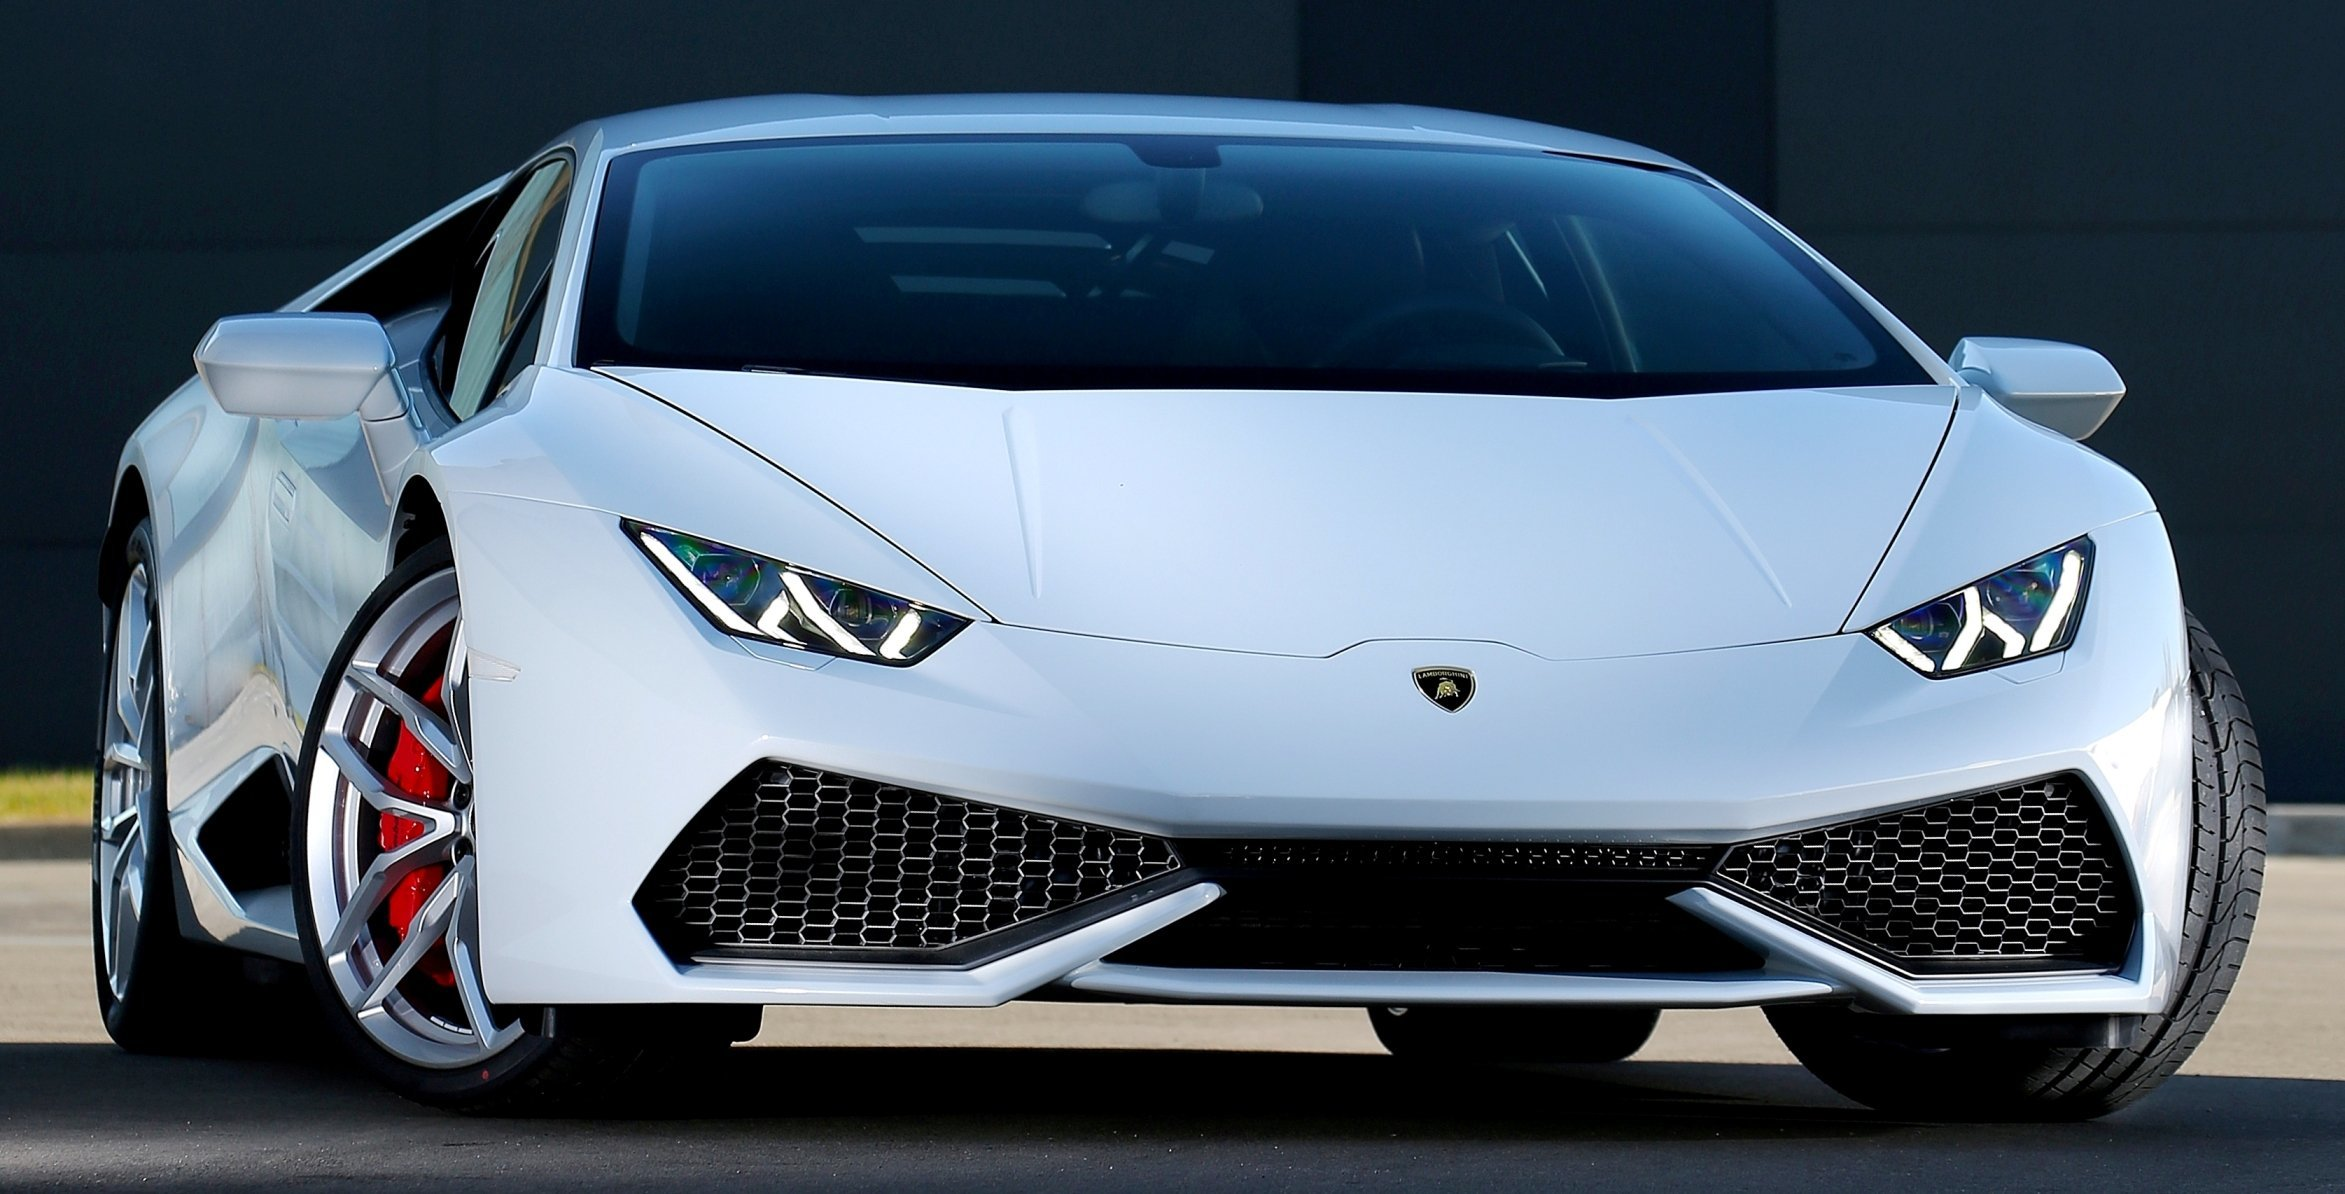 Image Result For Great Super Car Pics